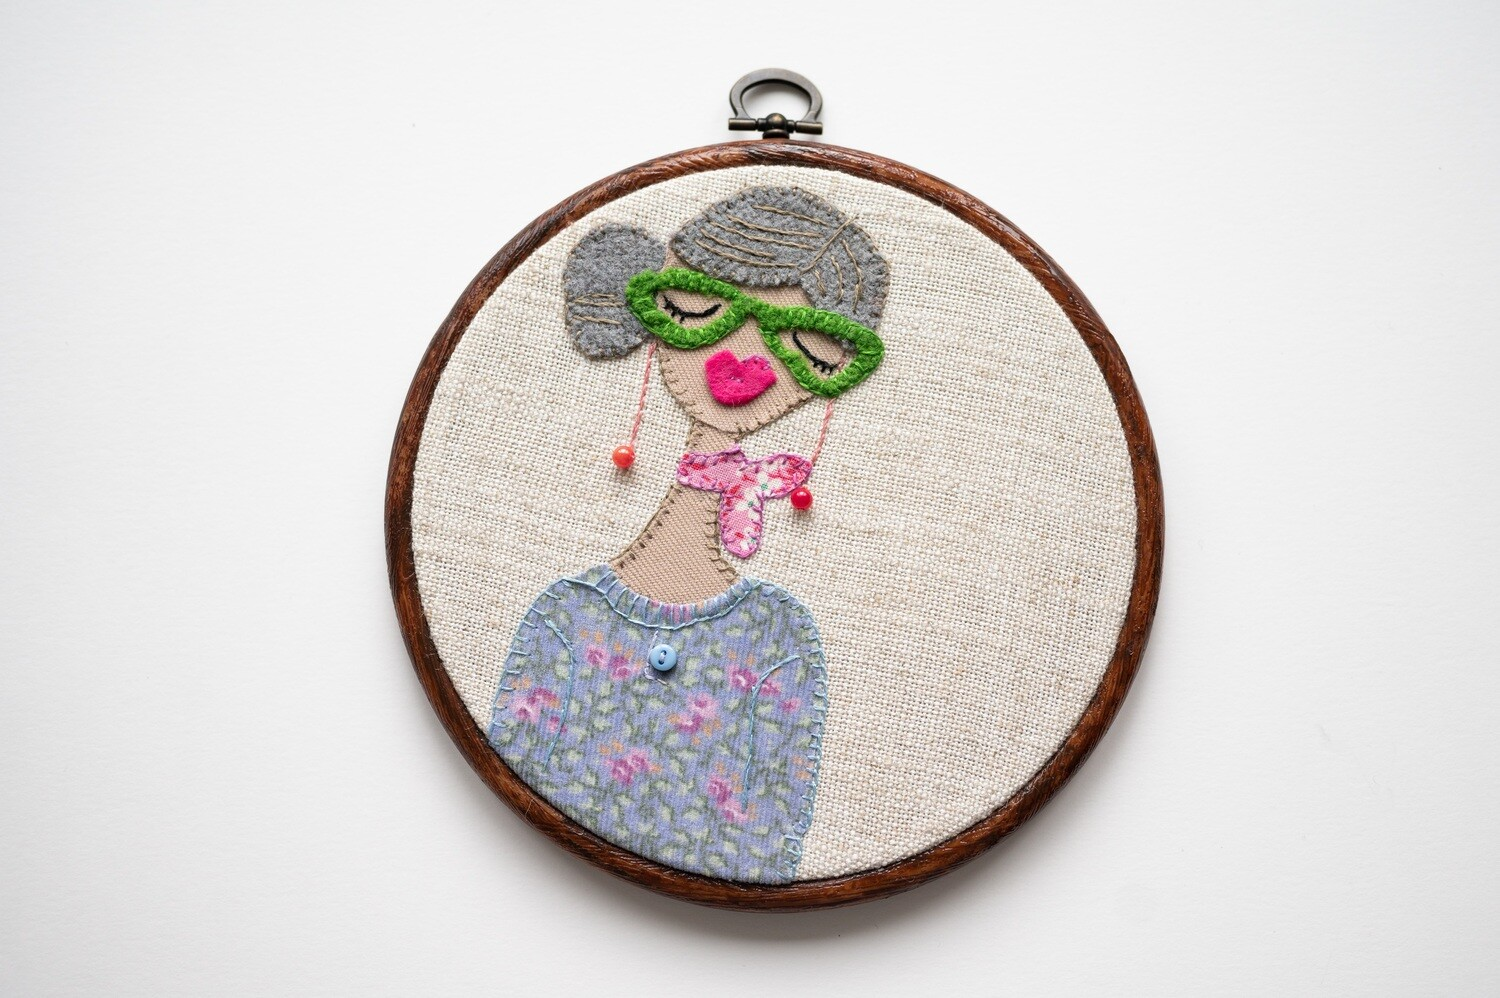 Snazzy Jazzy Make Do & Mind Embroidery Sewing Kit